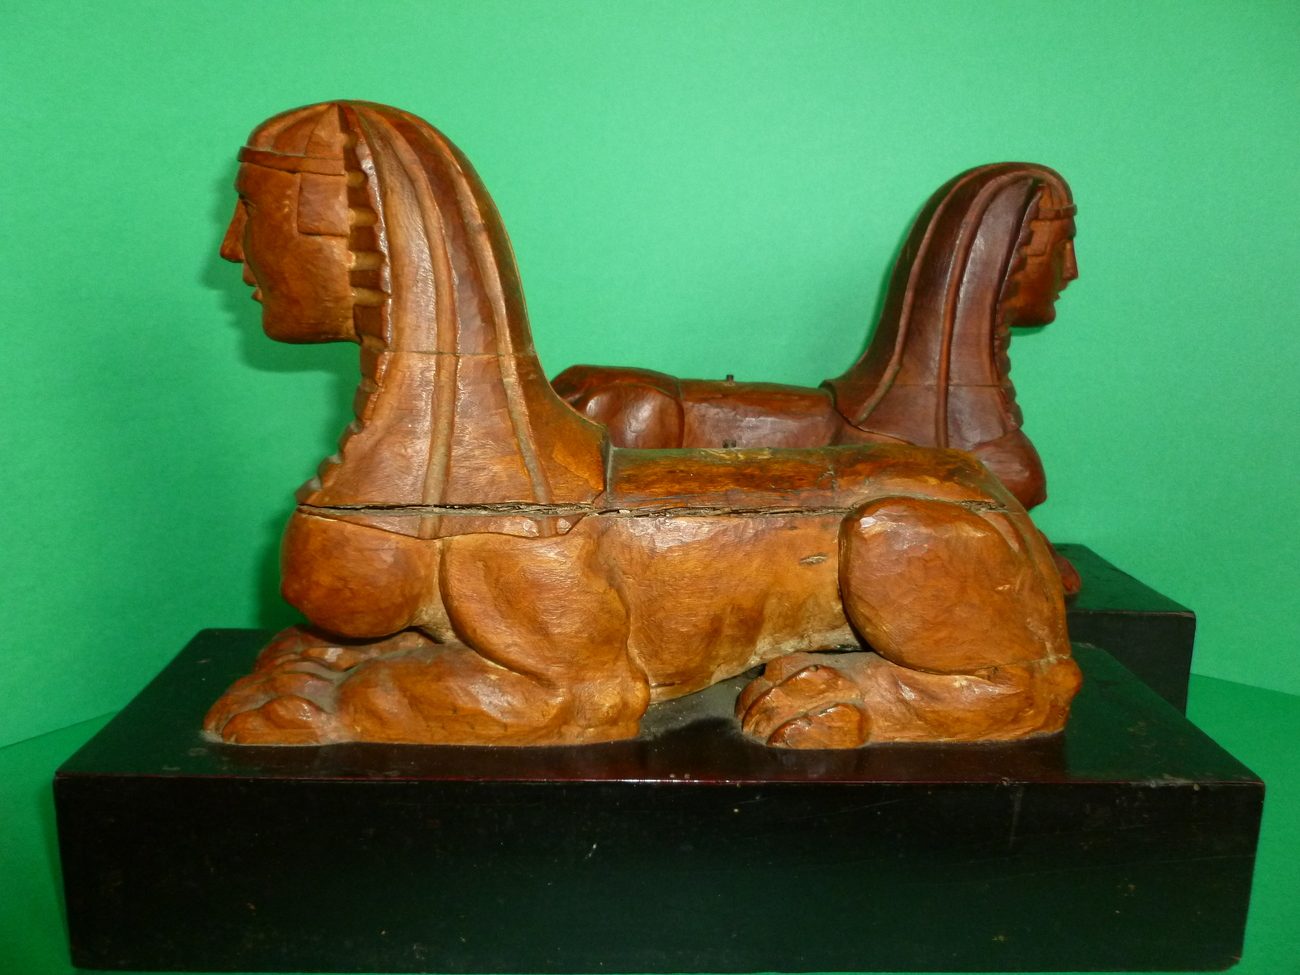 Antique Wooden Sphinx  Figures on Drawers Neo Classic Empire European Style